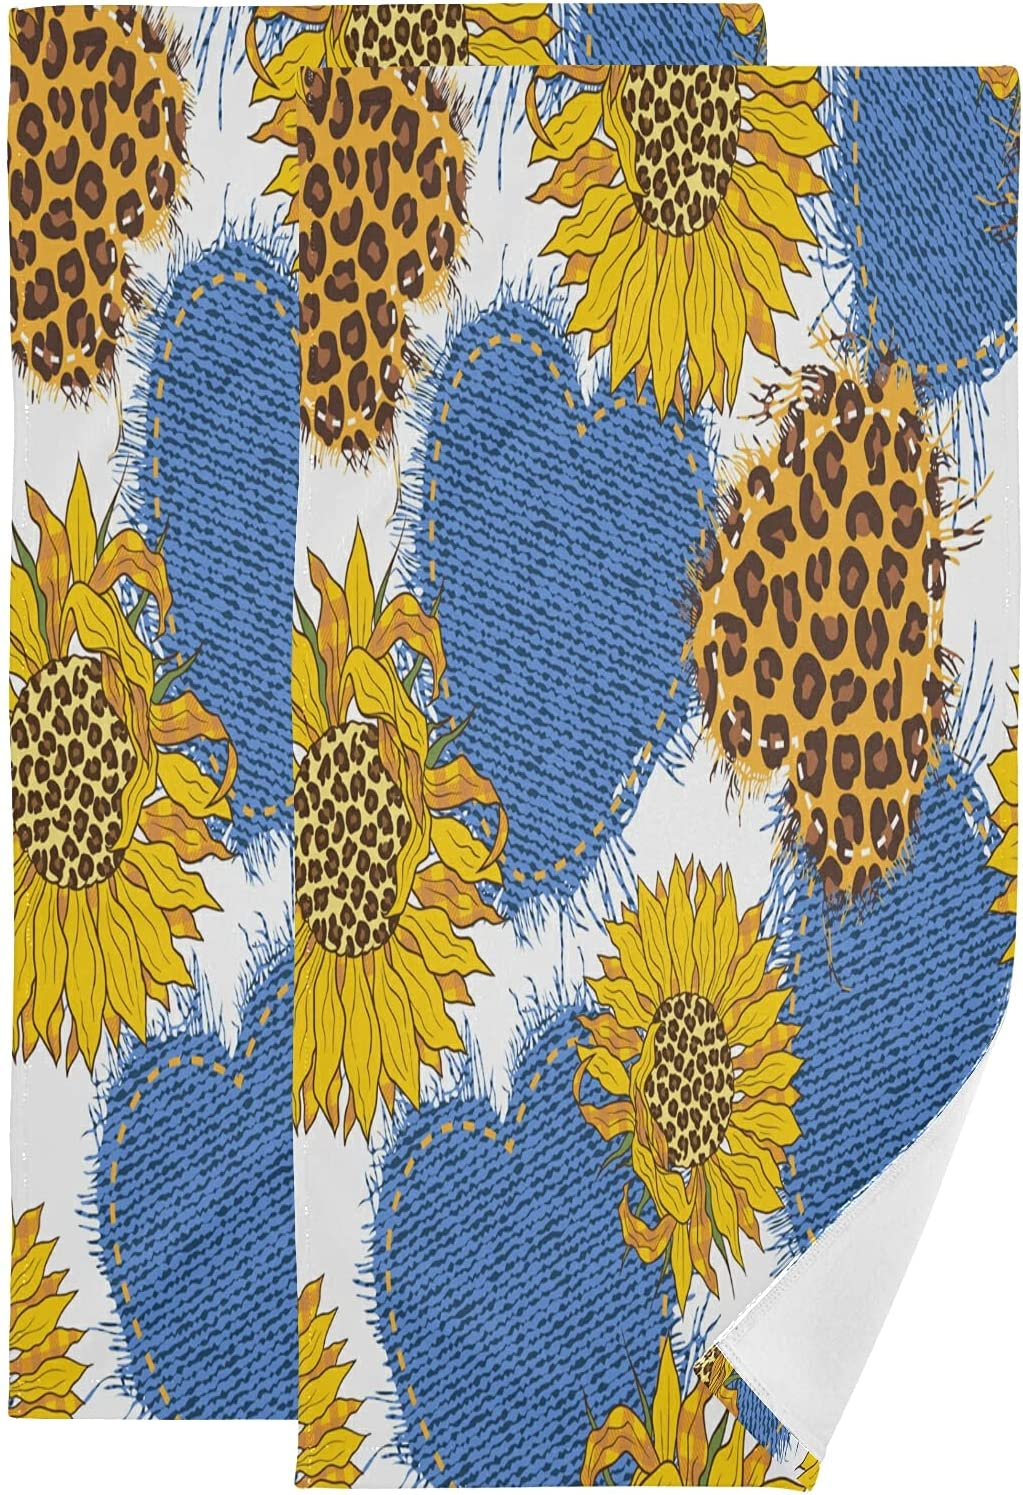 ALAZA Sunflower Max 84% OFF Bouquets Hand Towels Soft Decorative Absorbent Fresno Mall B